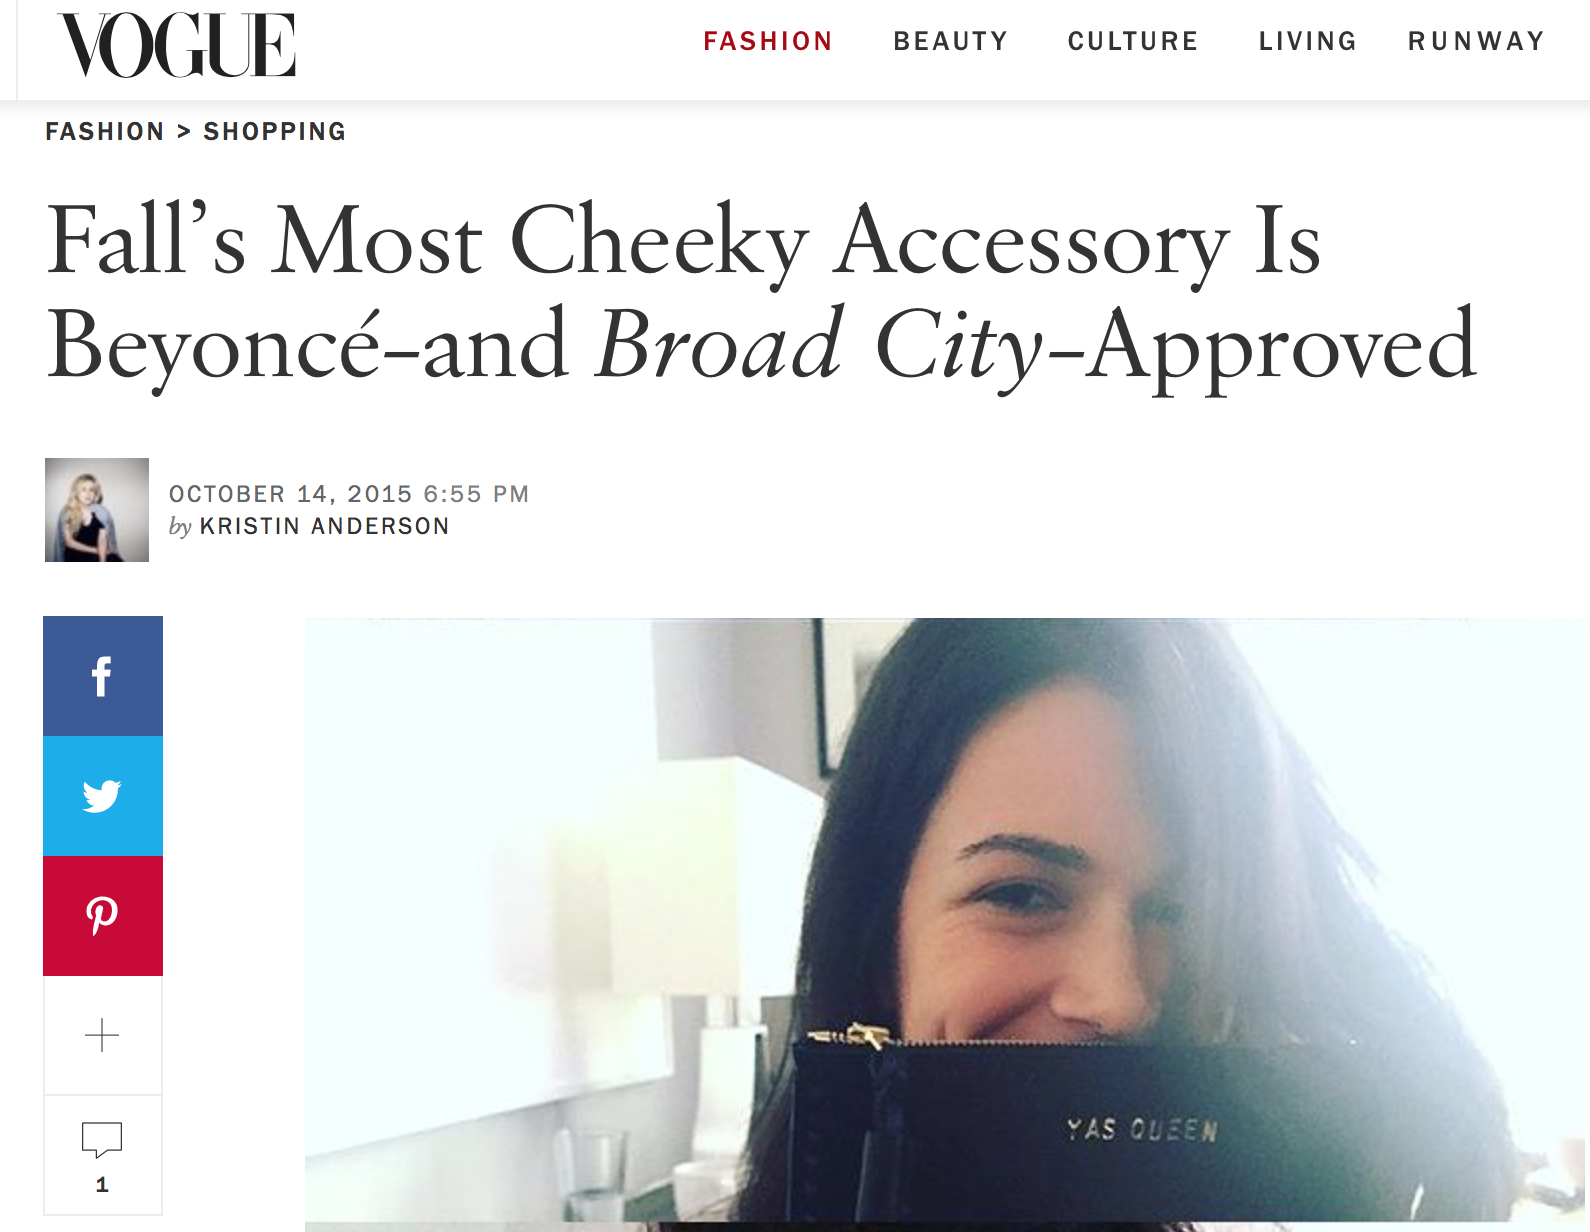 Abbi Jacobson Broad City Vogue Vogue.com Wendy Nichol Fall's Most Cheeky Accessory is Beyonce and Broad City Approved Leather Large Laced Clutch Pouch Custom Embossed Initial Letter Monogram Card Phone Wallet Clutch Wendy Nichol Designer Purse handbags Handmade in NYC New York City Zip Zipper Pouch Smooth Black High Quality Leather Fringe Tassel Gold Silver Foil YAS QUEEN FUCK YES FUCK YEAH FUCK YOU FUCK NO FUCK OFF